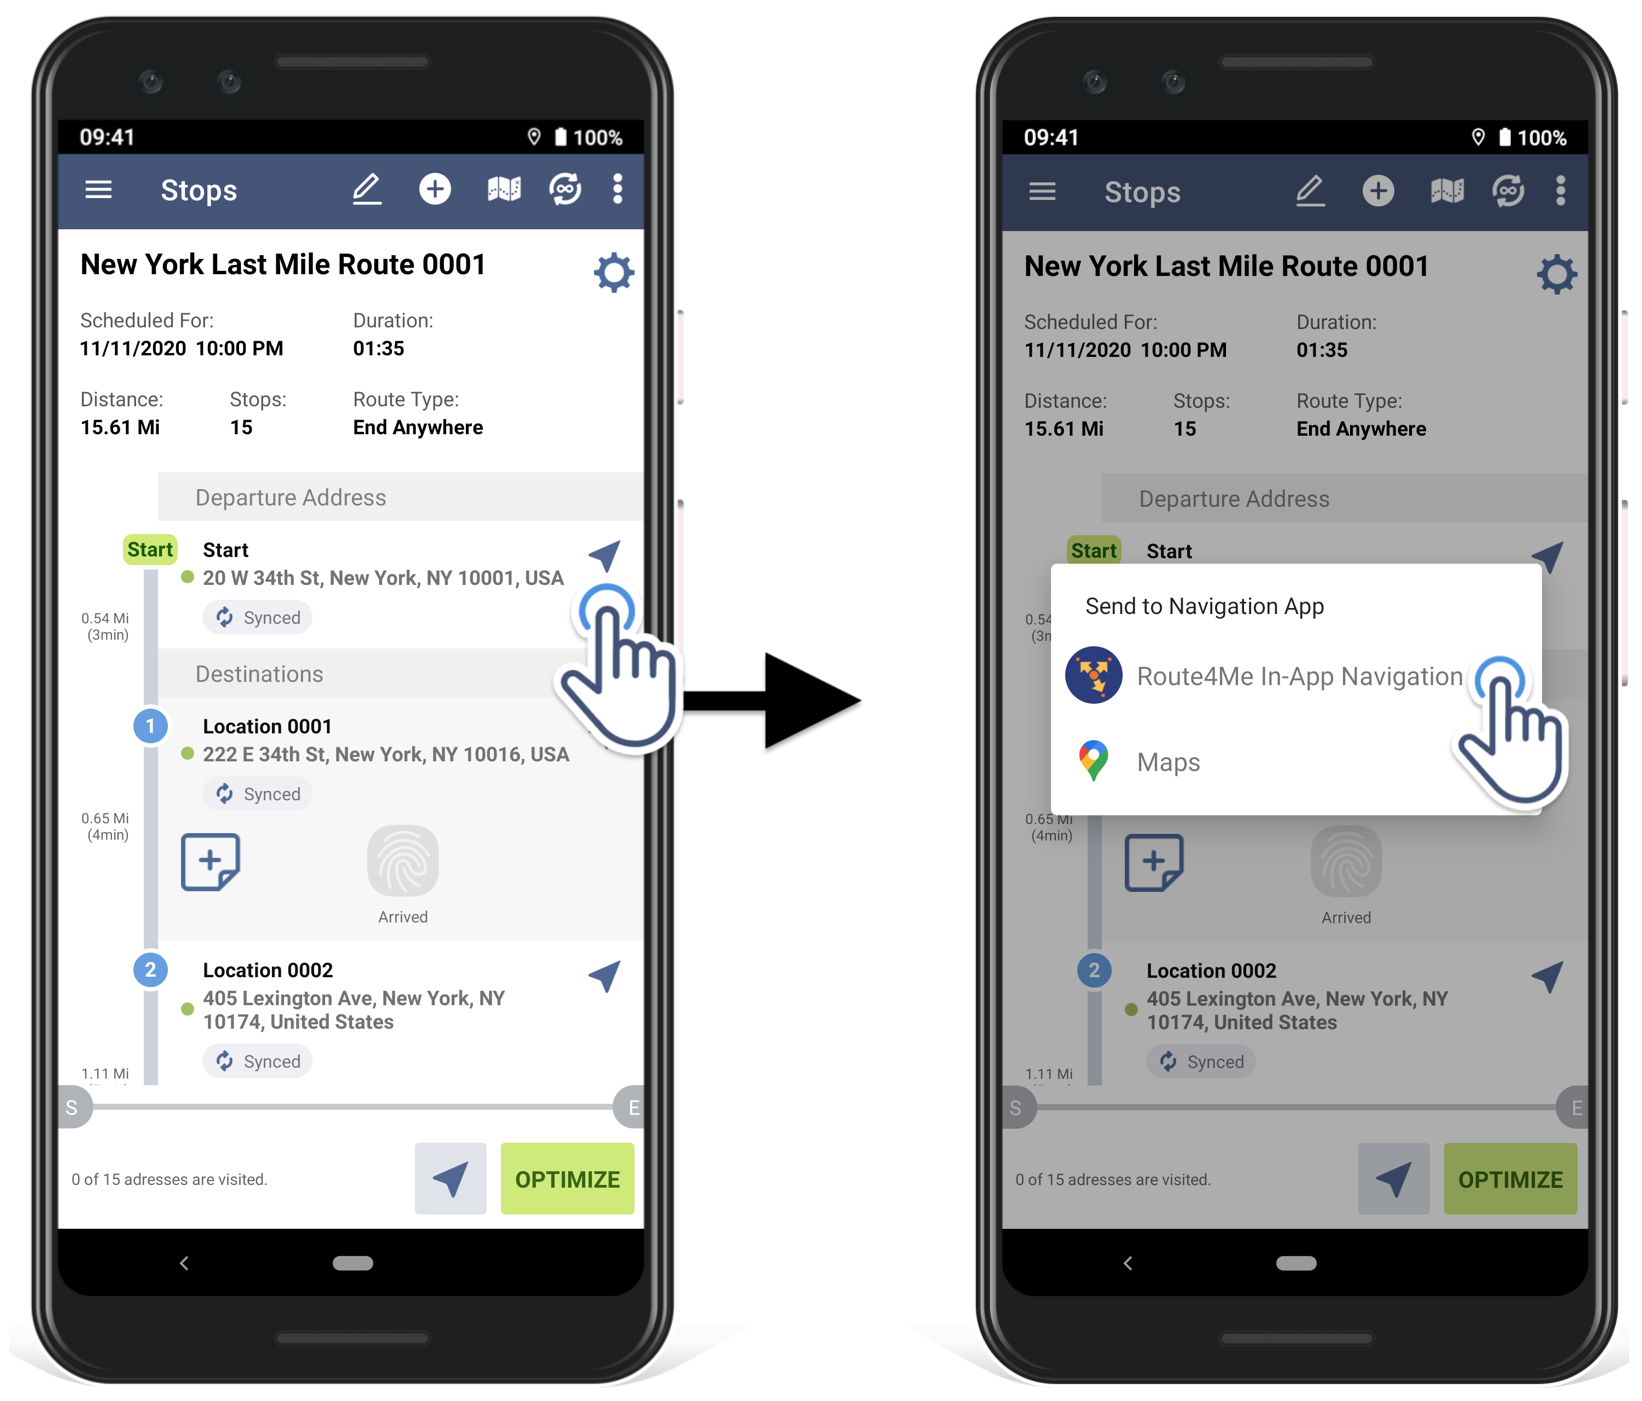 how to select your preferred navigation app in Route4Me Android route planner